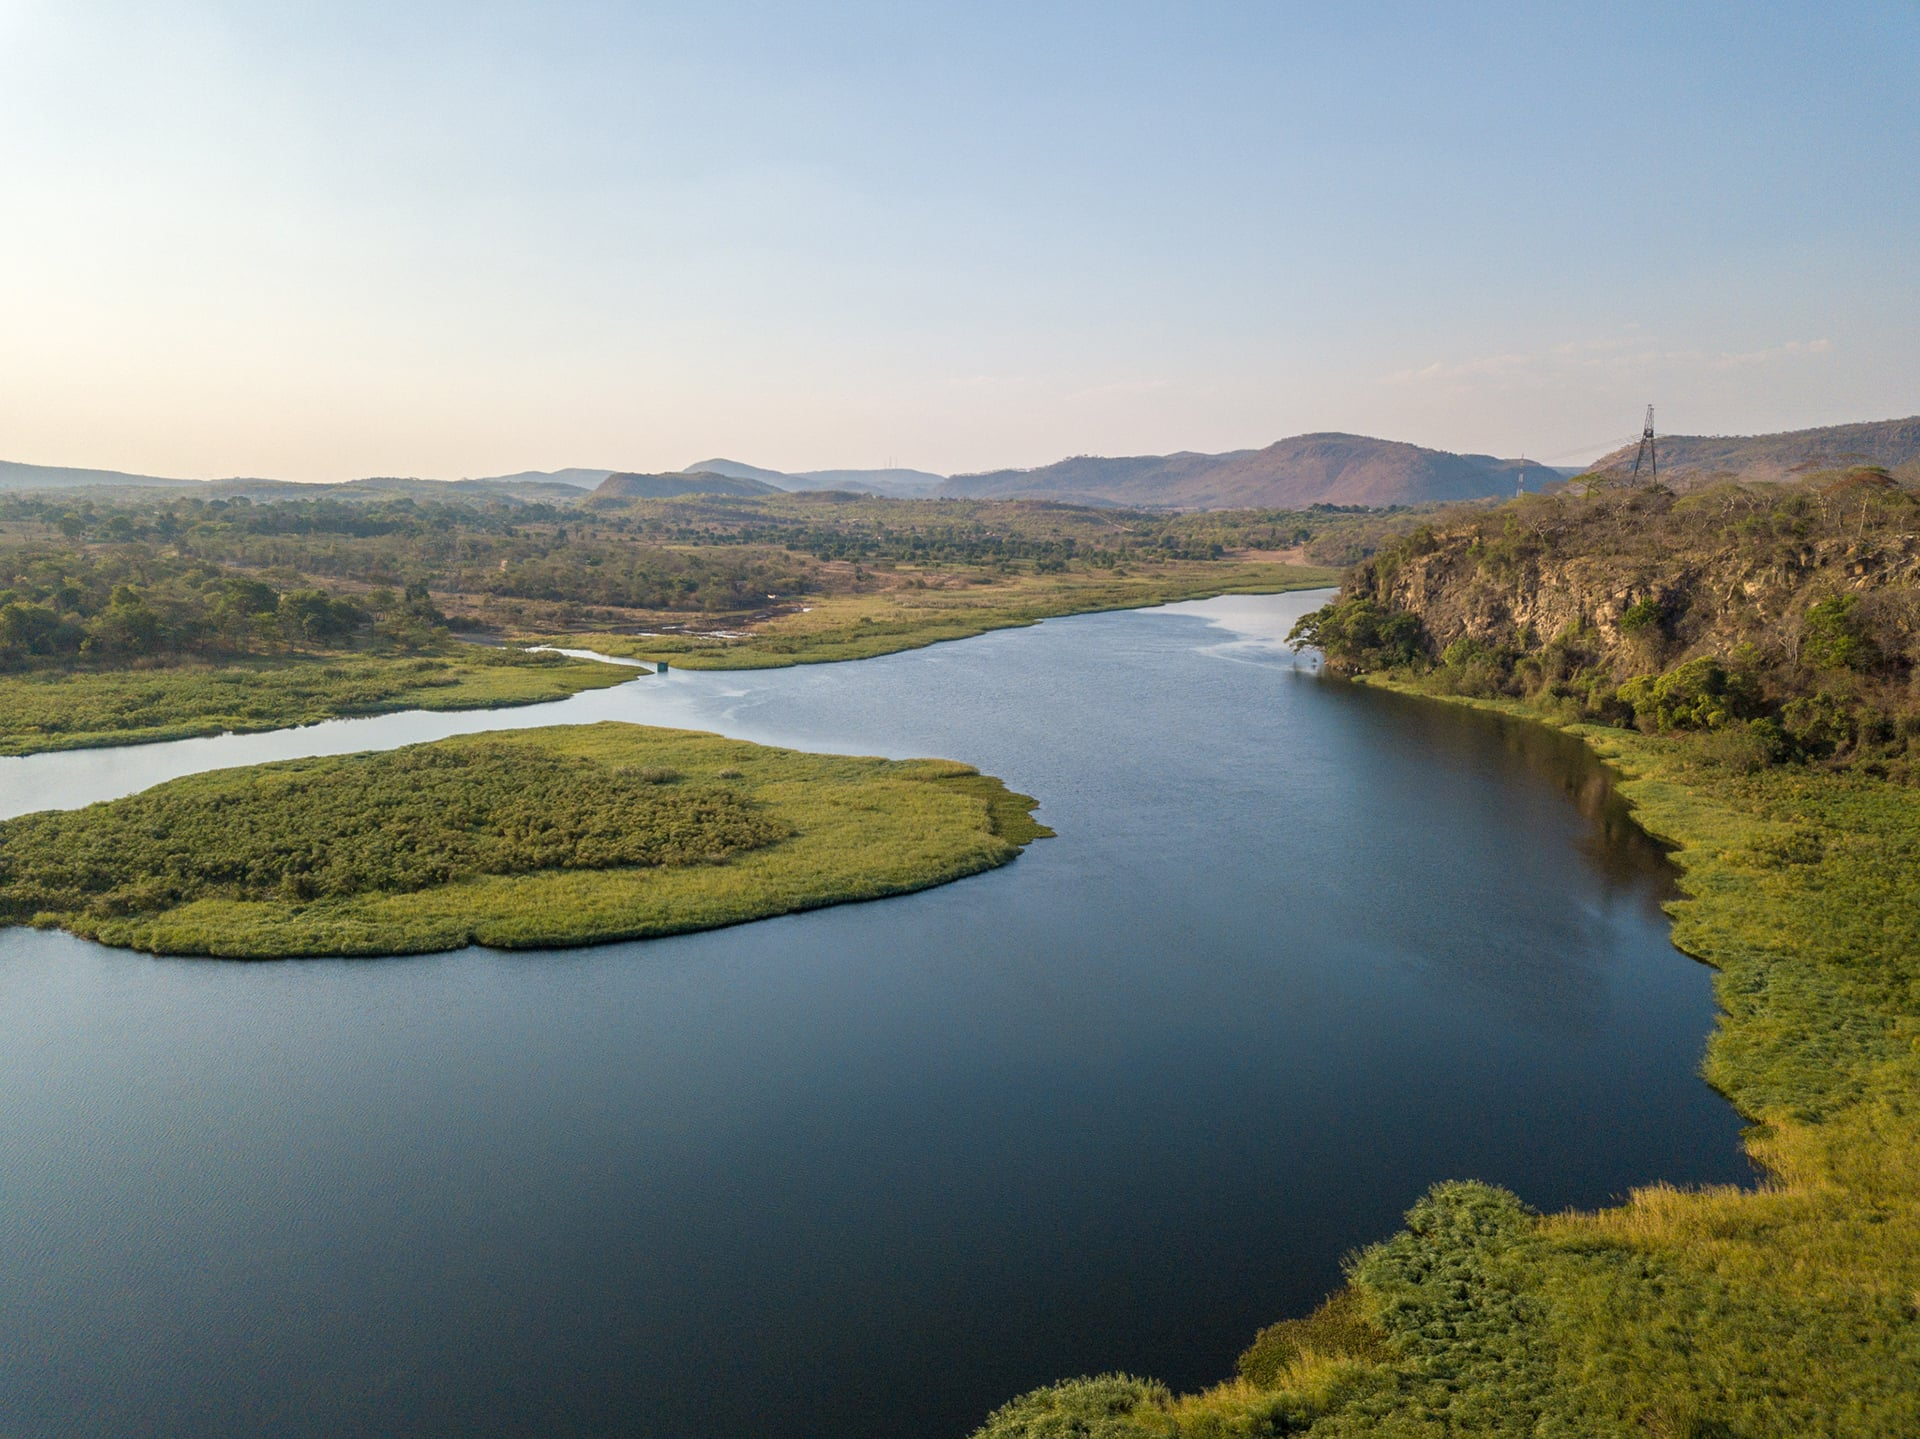 Aerial view of Kafue River